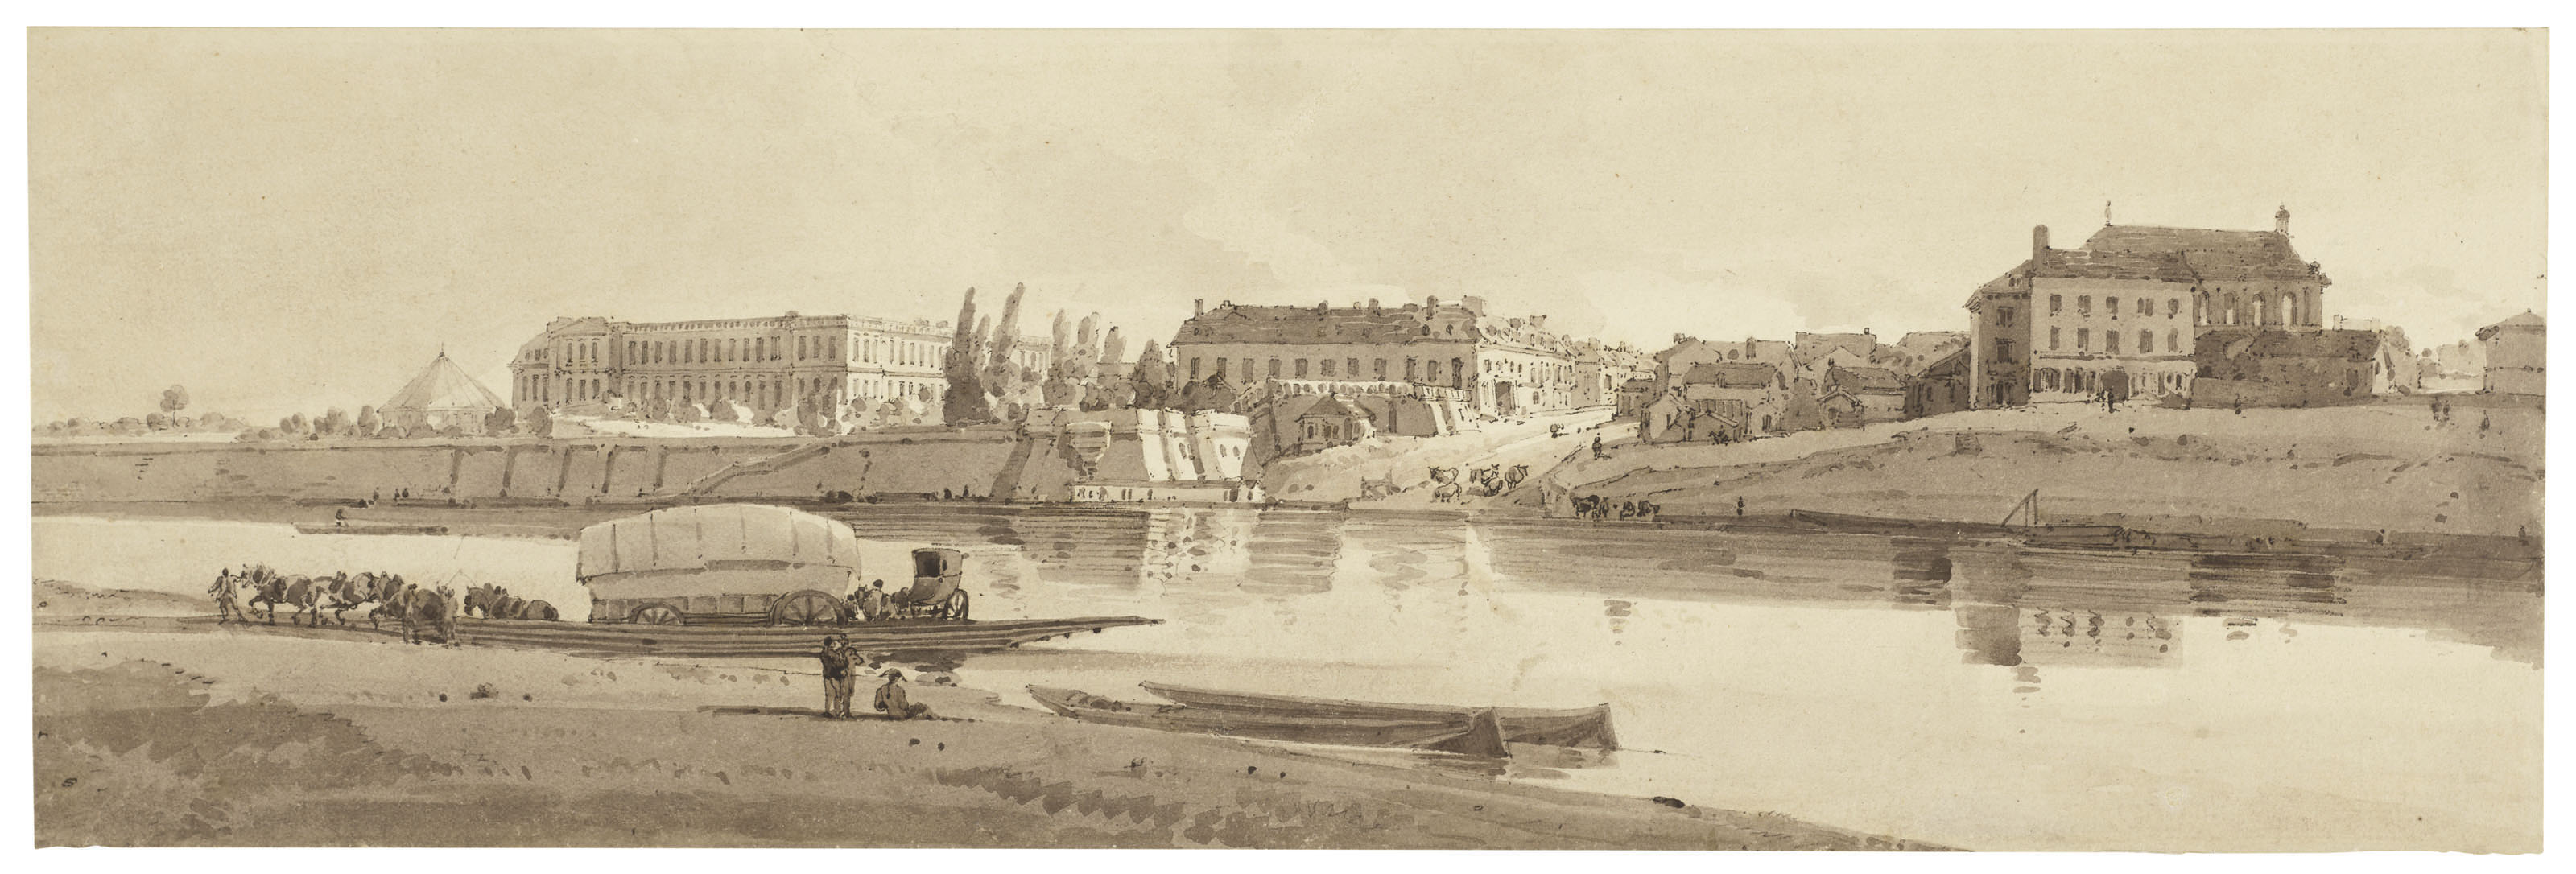 View of the palace and village of Choisy on the bank of the Seine, Paris